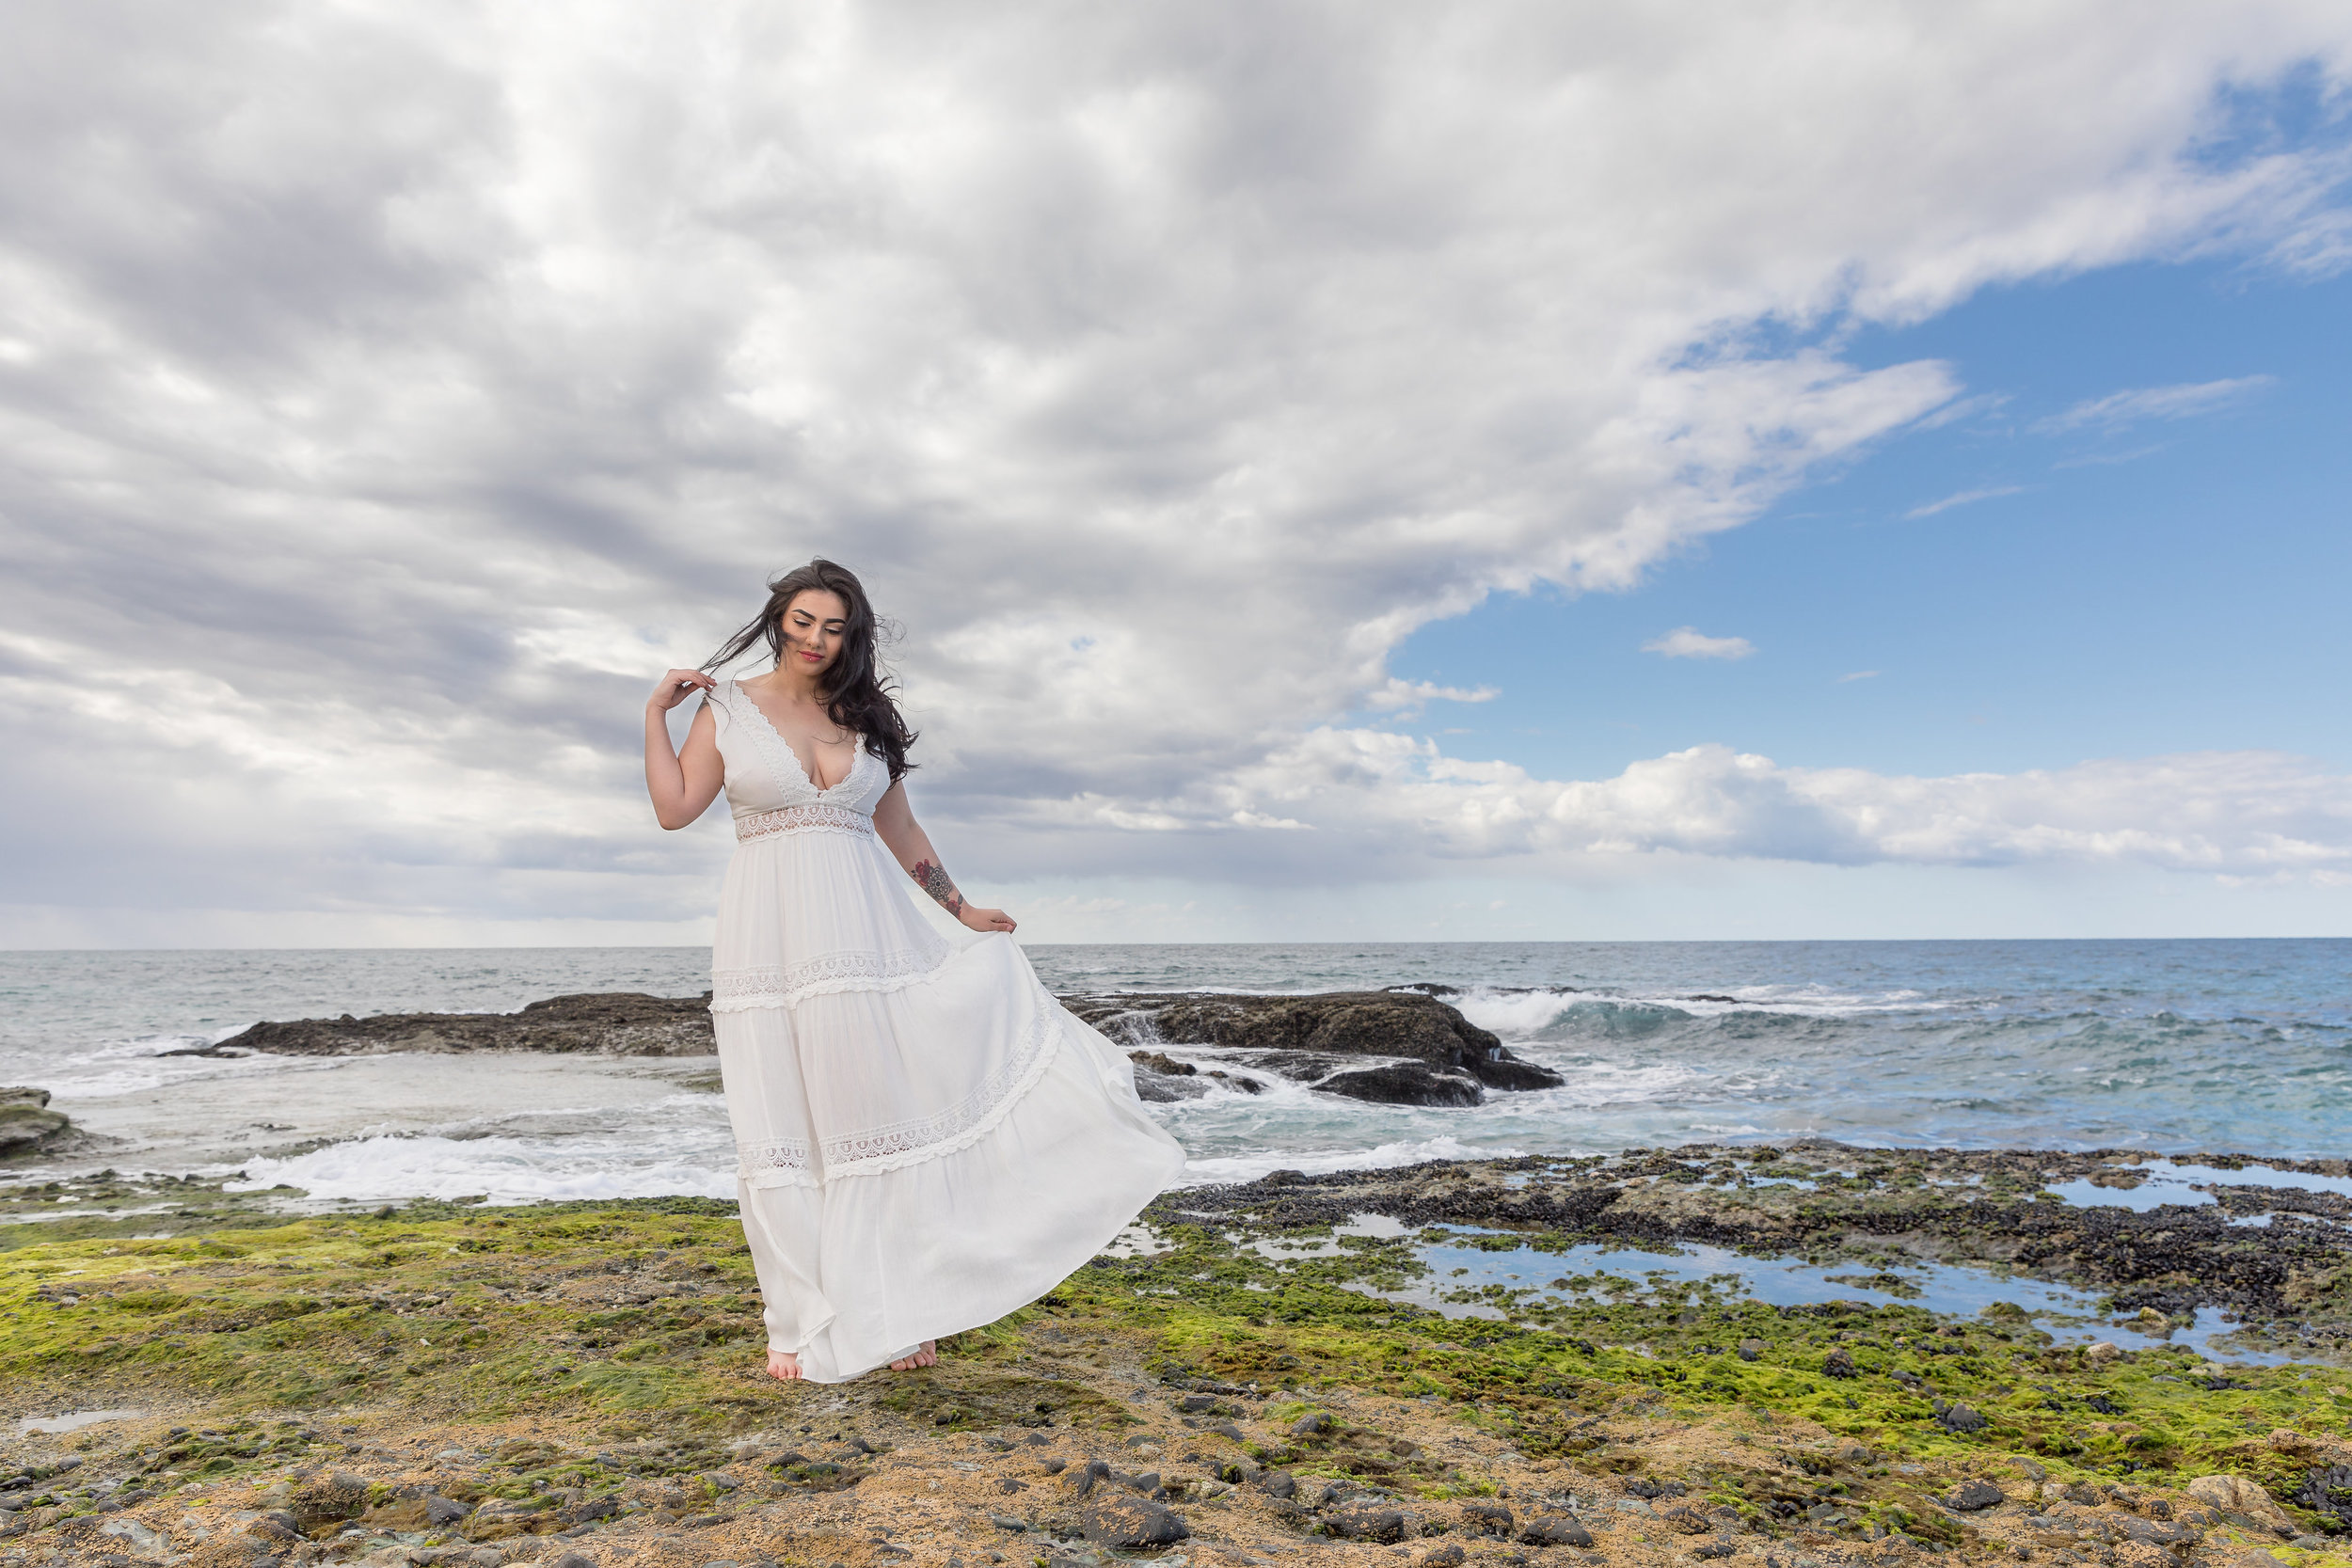 Woman in Long Beach Dress on the Beach for Engagement Portrait.jpg